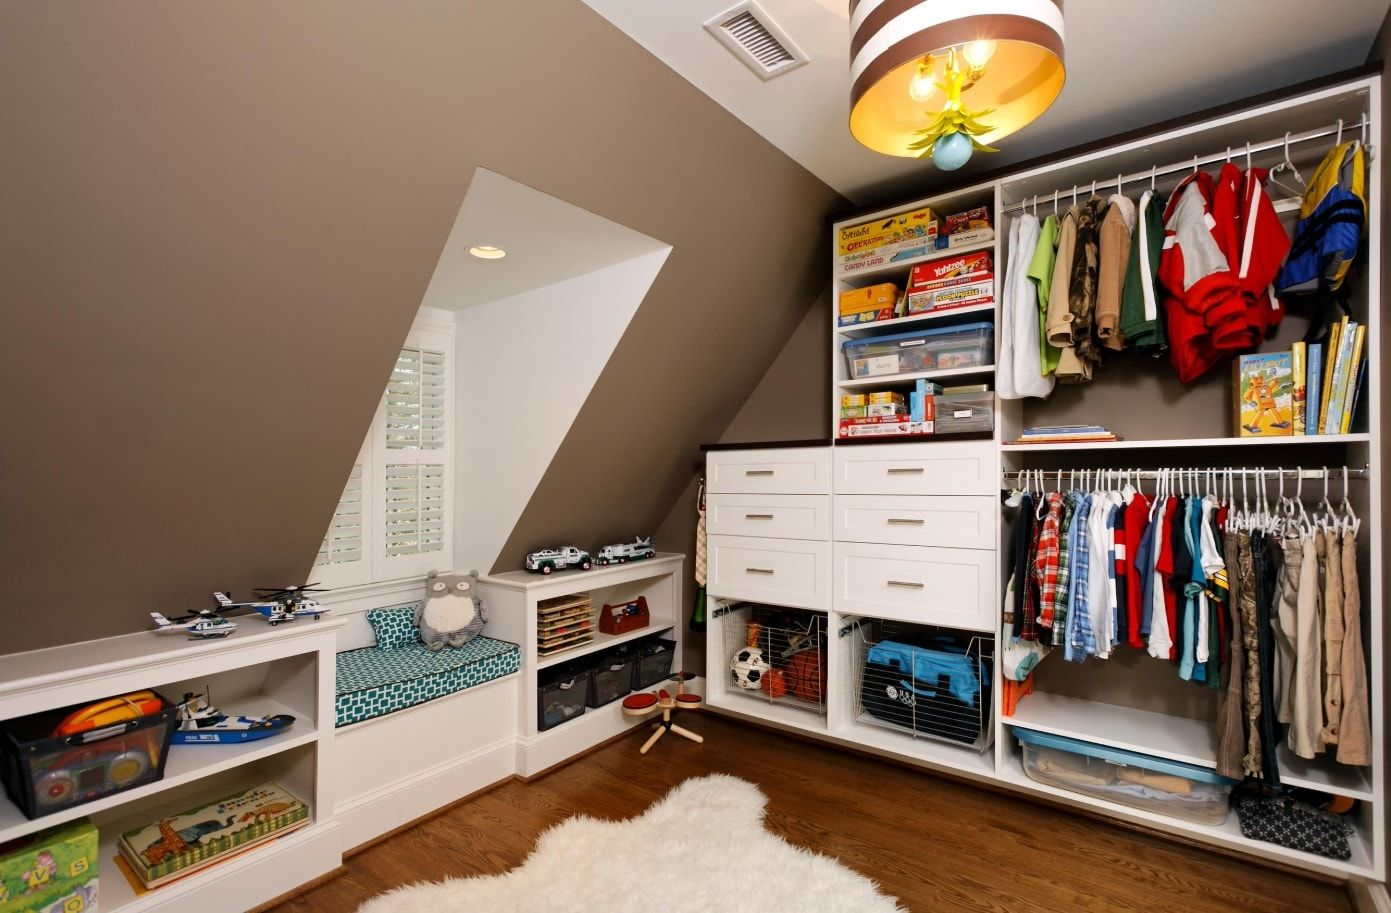 nicely decorated wardrobe at the attic